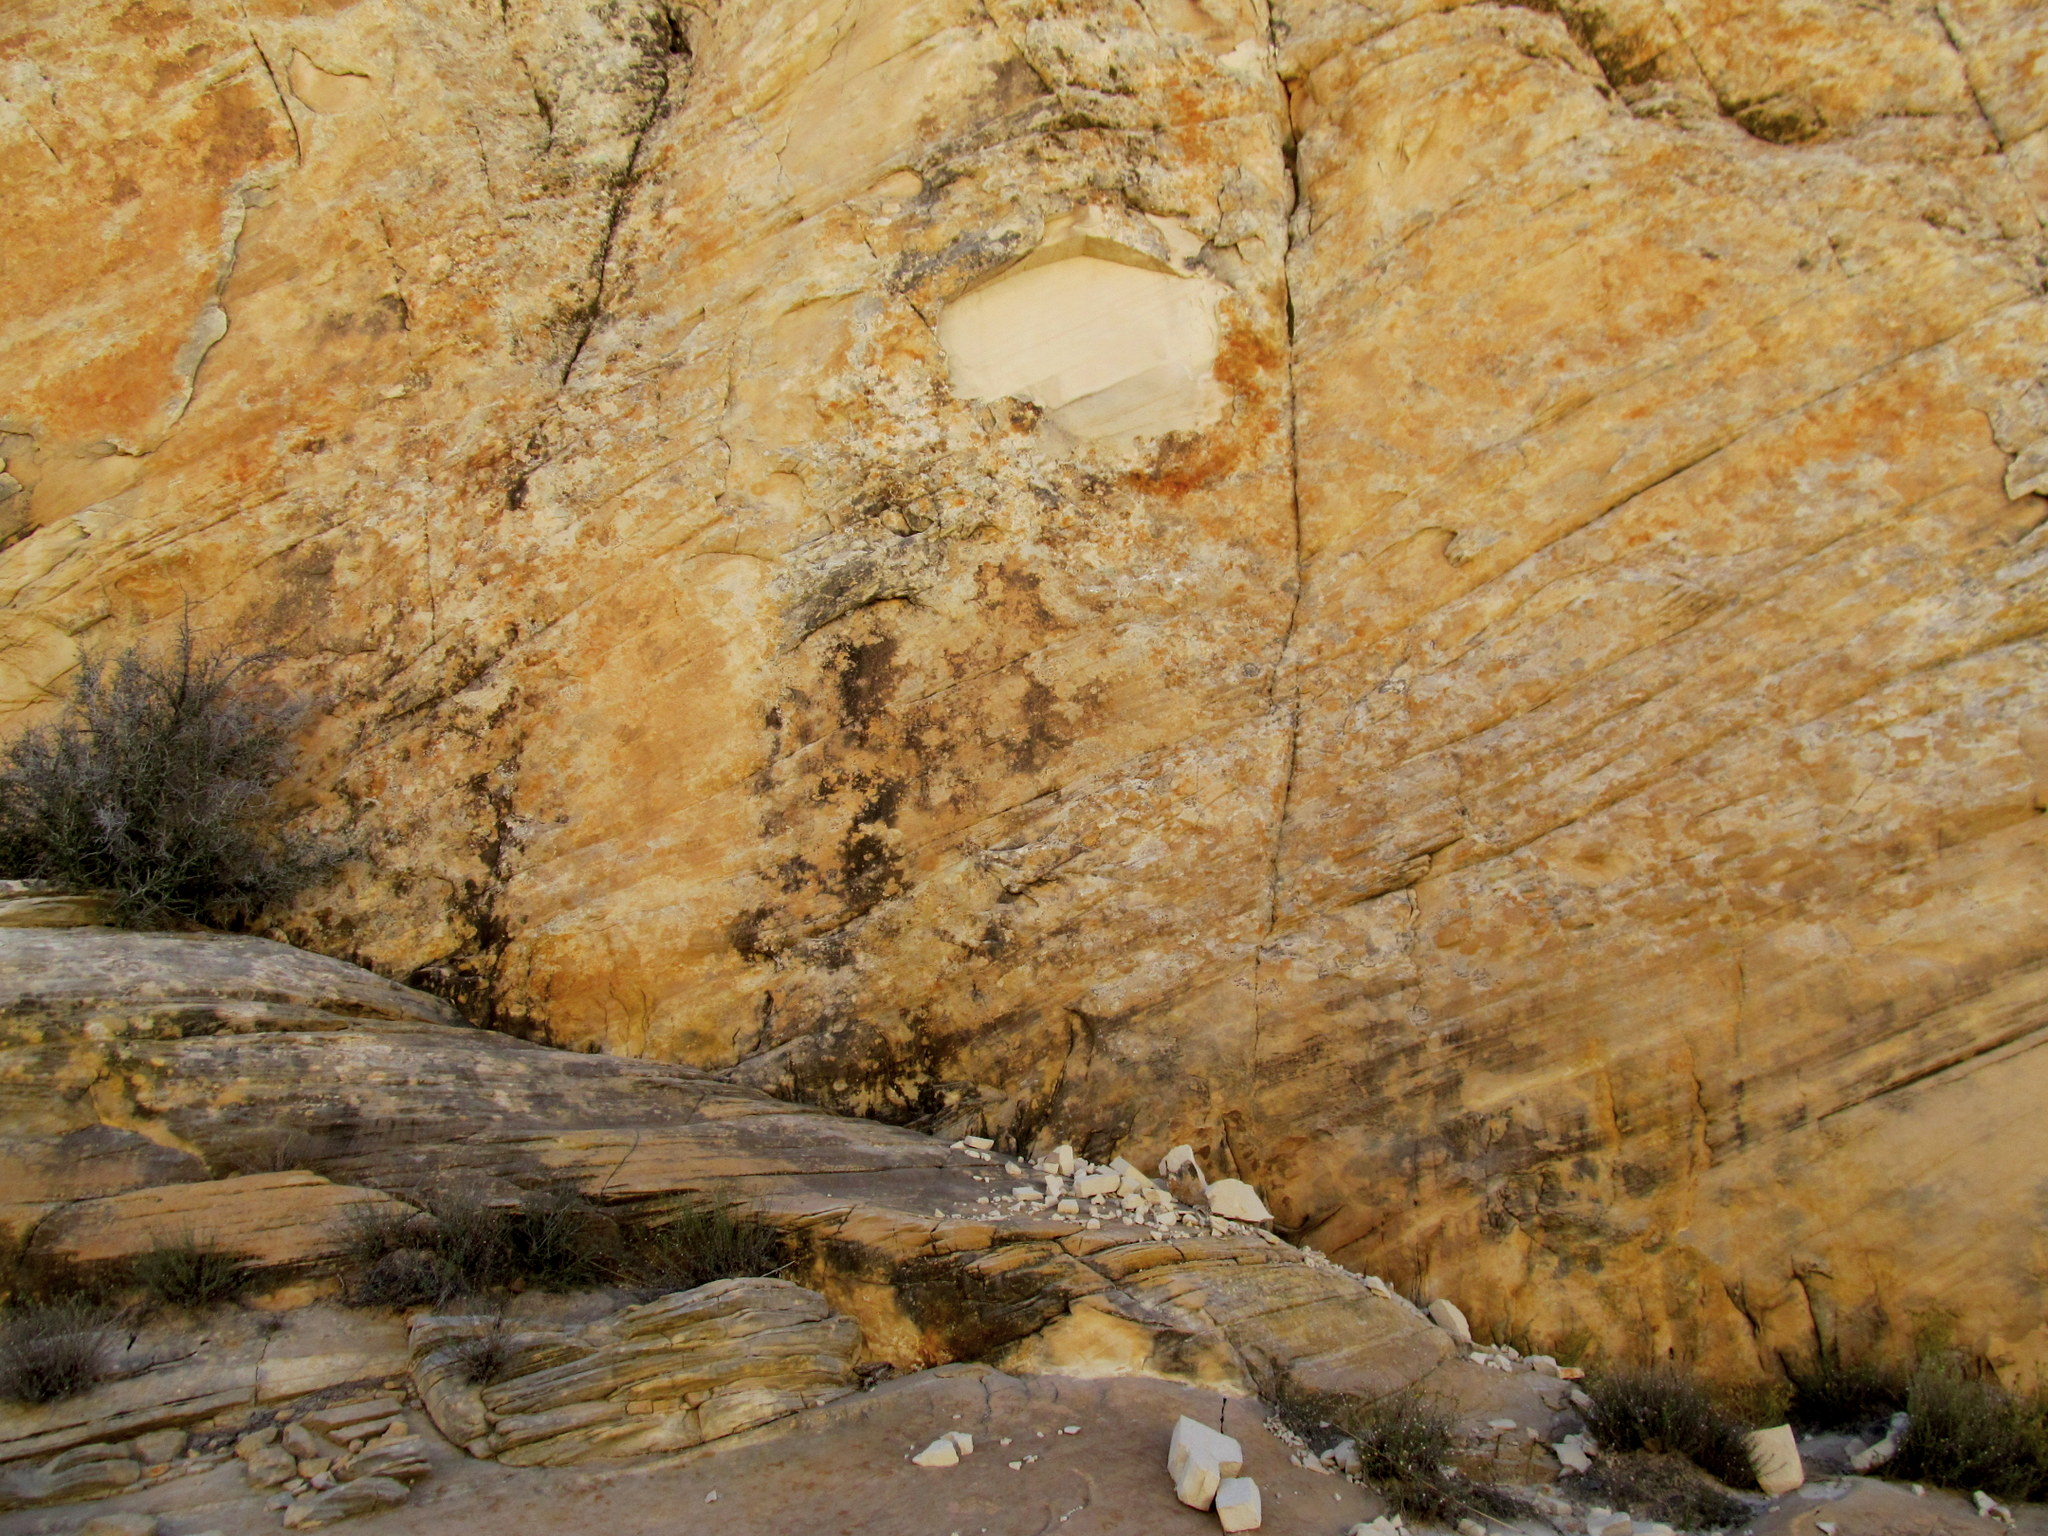 Photo: Tiny rockfall